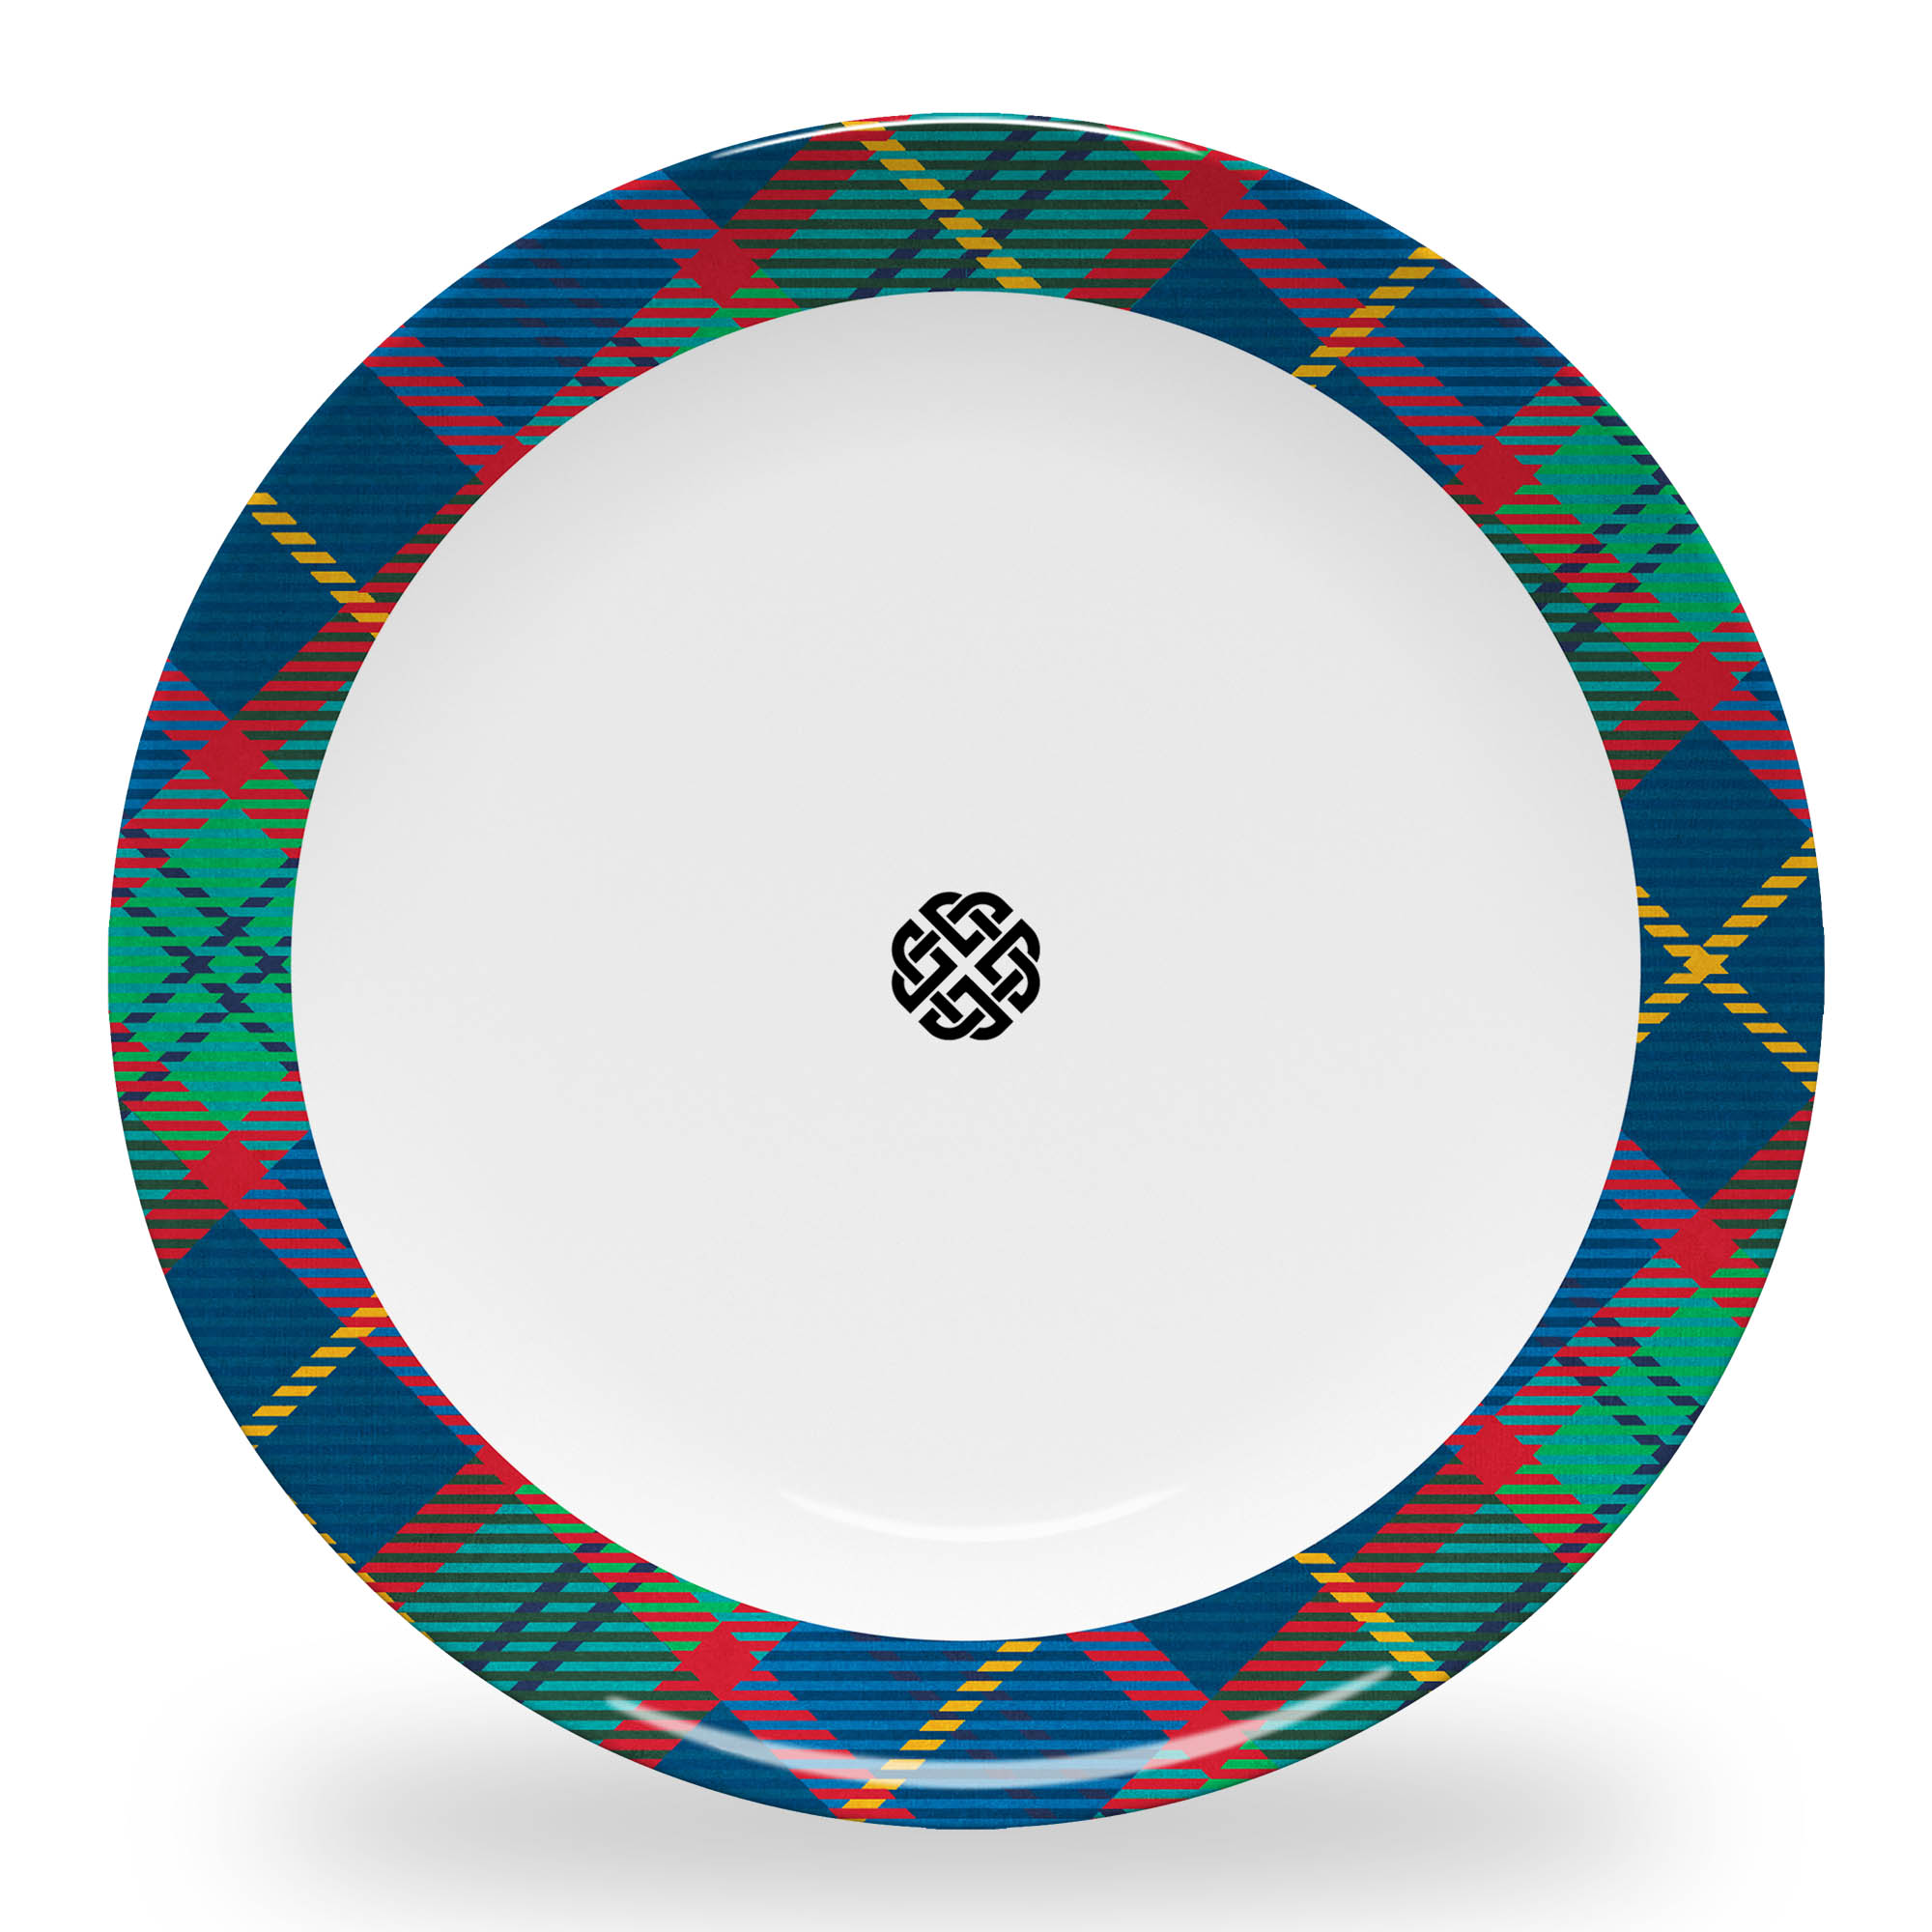 Tartan Plate with Celtic Knot